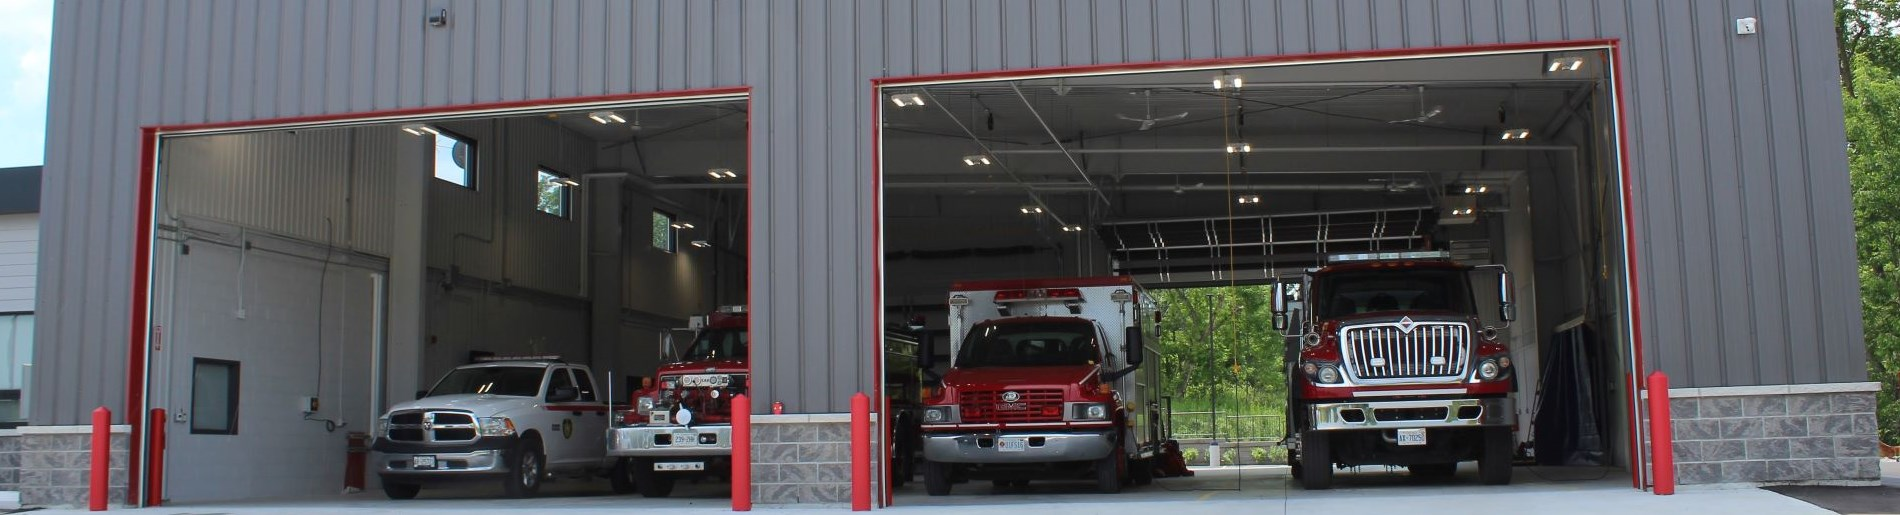 garage with fire trucks